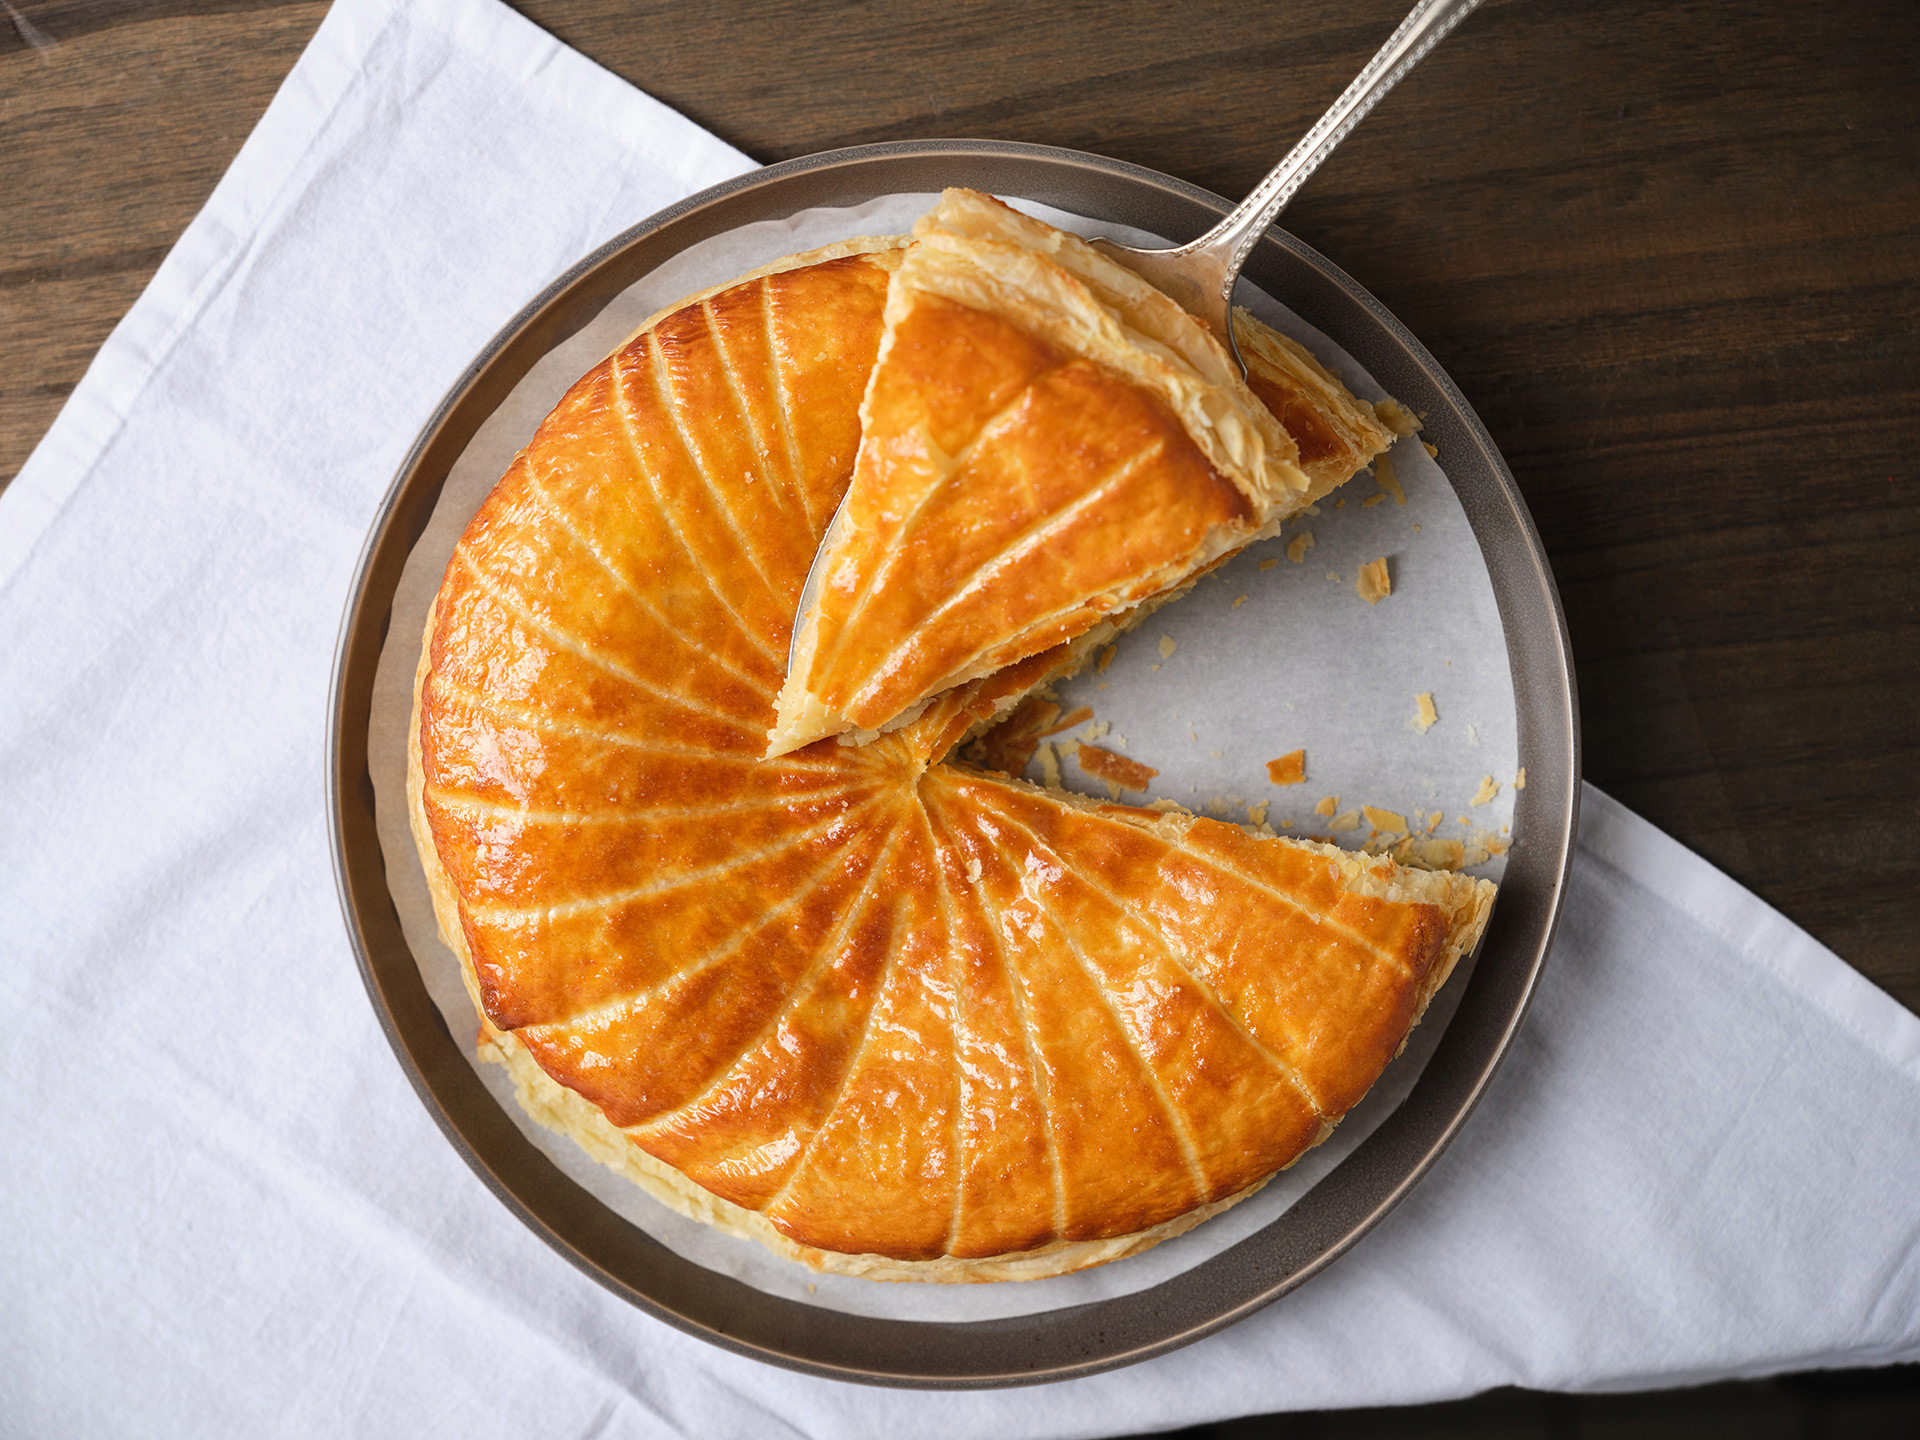 indulging-in-holiday-cheer-4-galette-des-rois